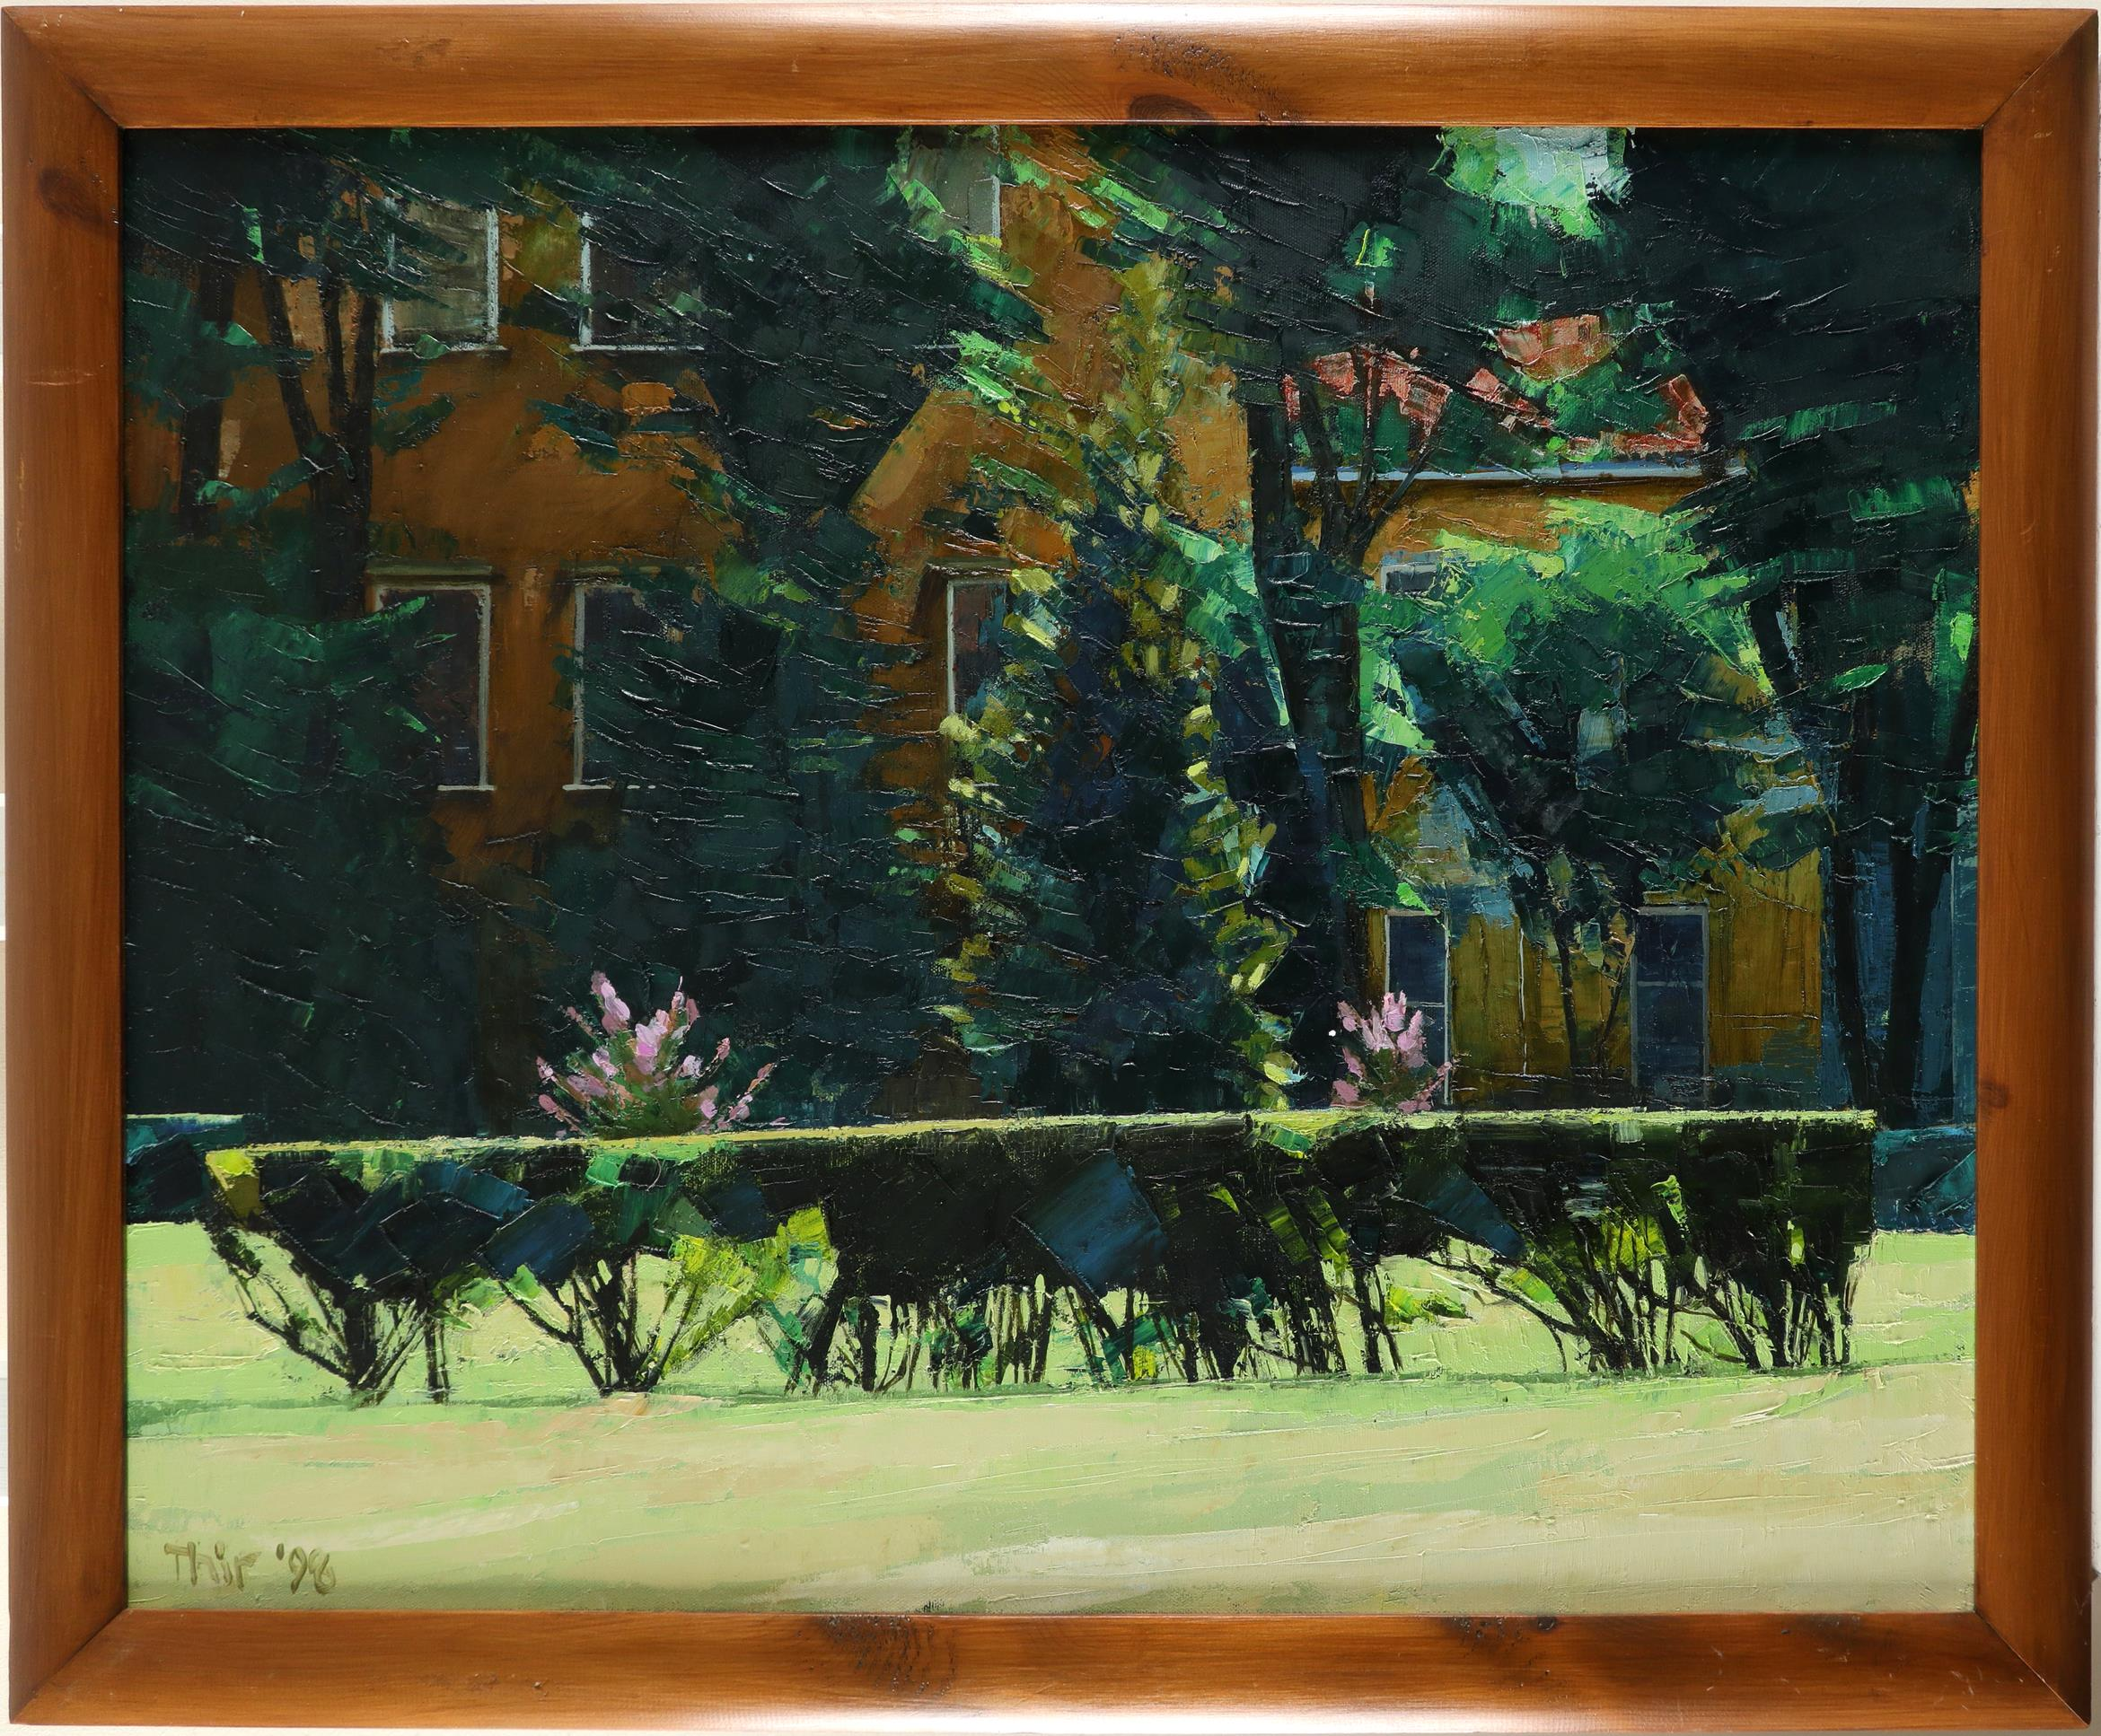 ‡John Thirlwall (b.1943) Ducal Palace Gardens, Mantua Signed and dated Thir '98 (lower left), and - Image 2 of 3